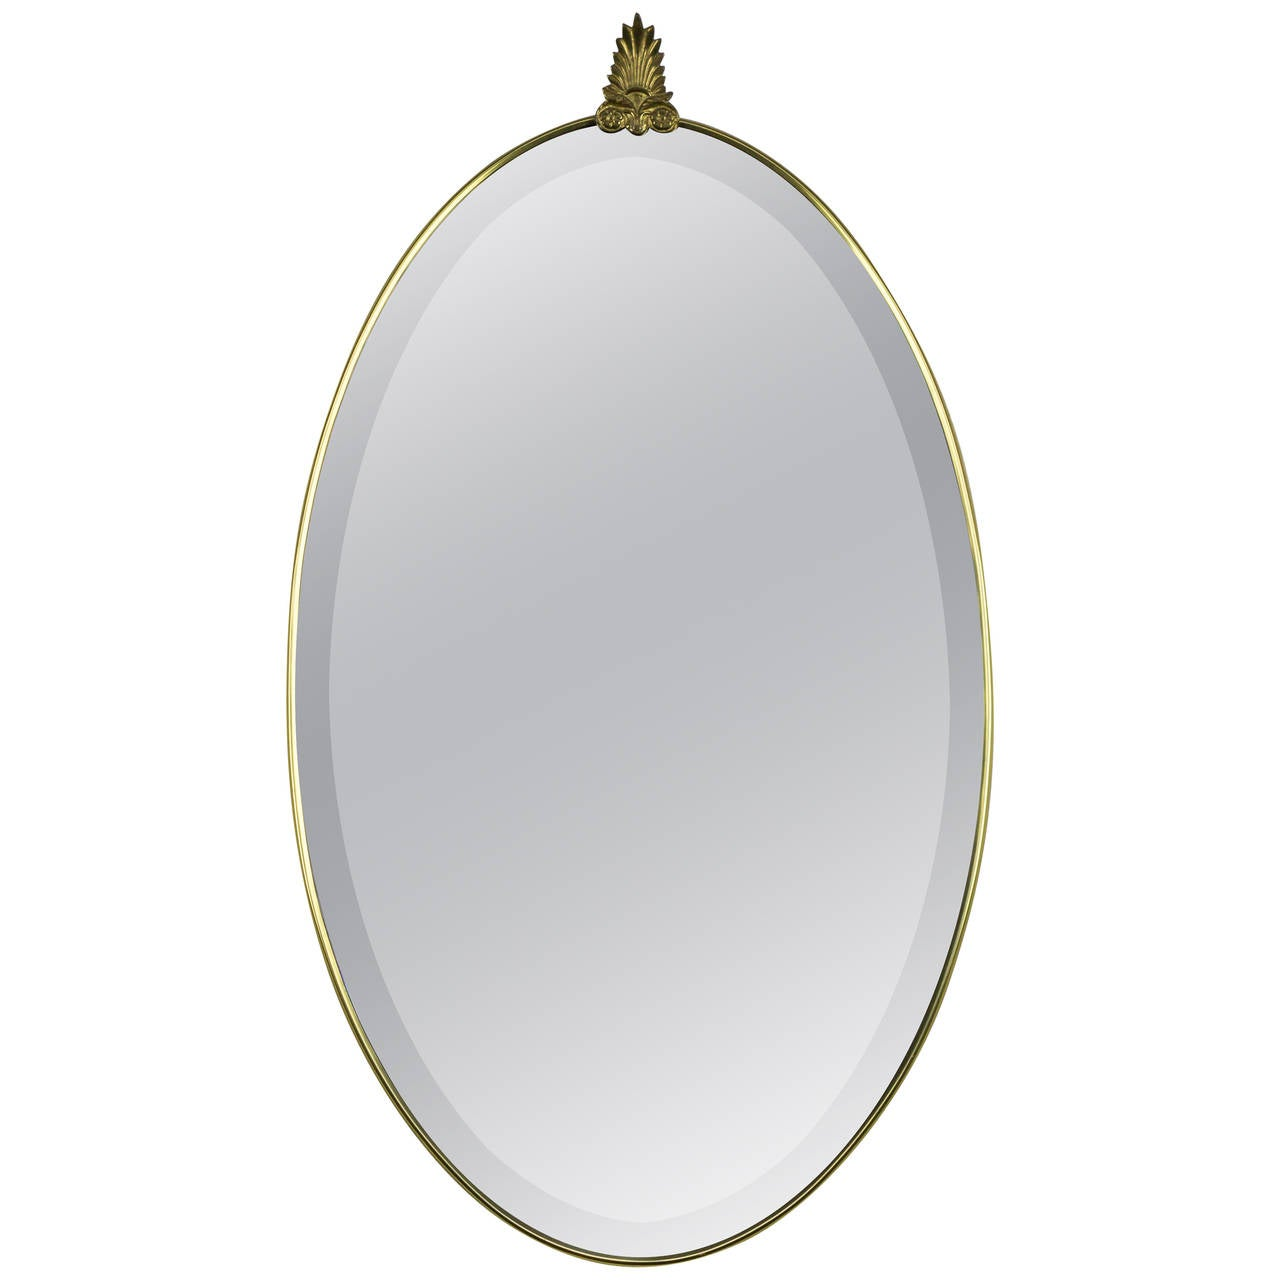 Oval italian bevel mirror in brass frame with decorative